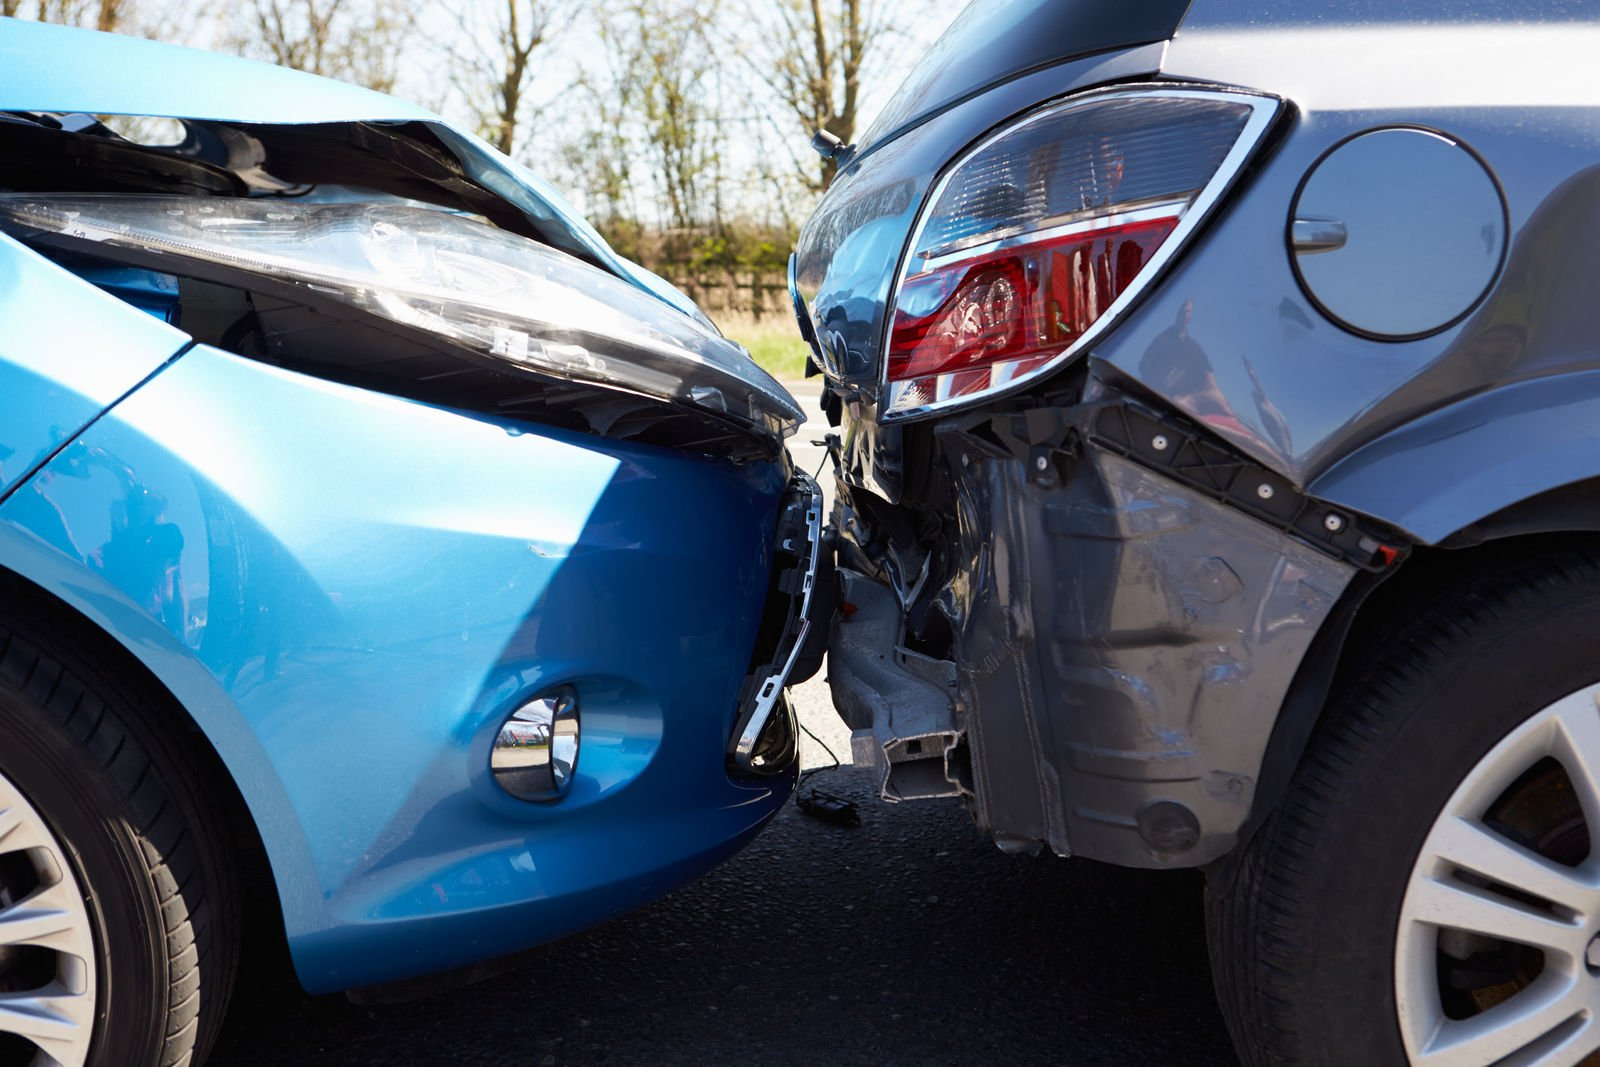 What to Do With a Totaled Car and No Insurance